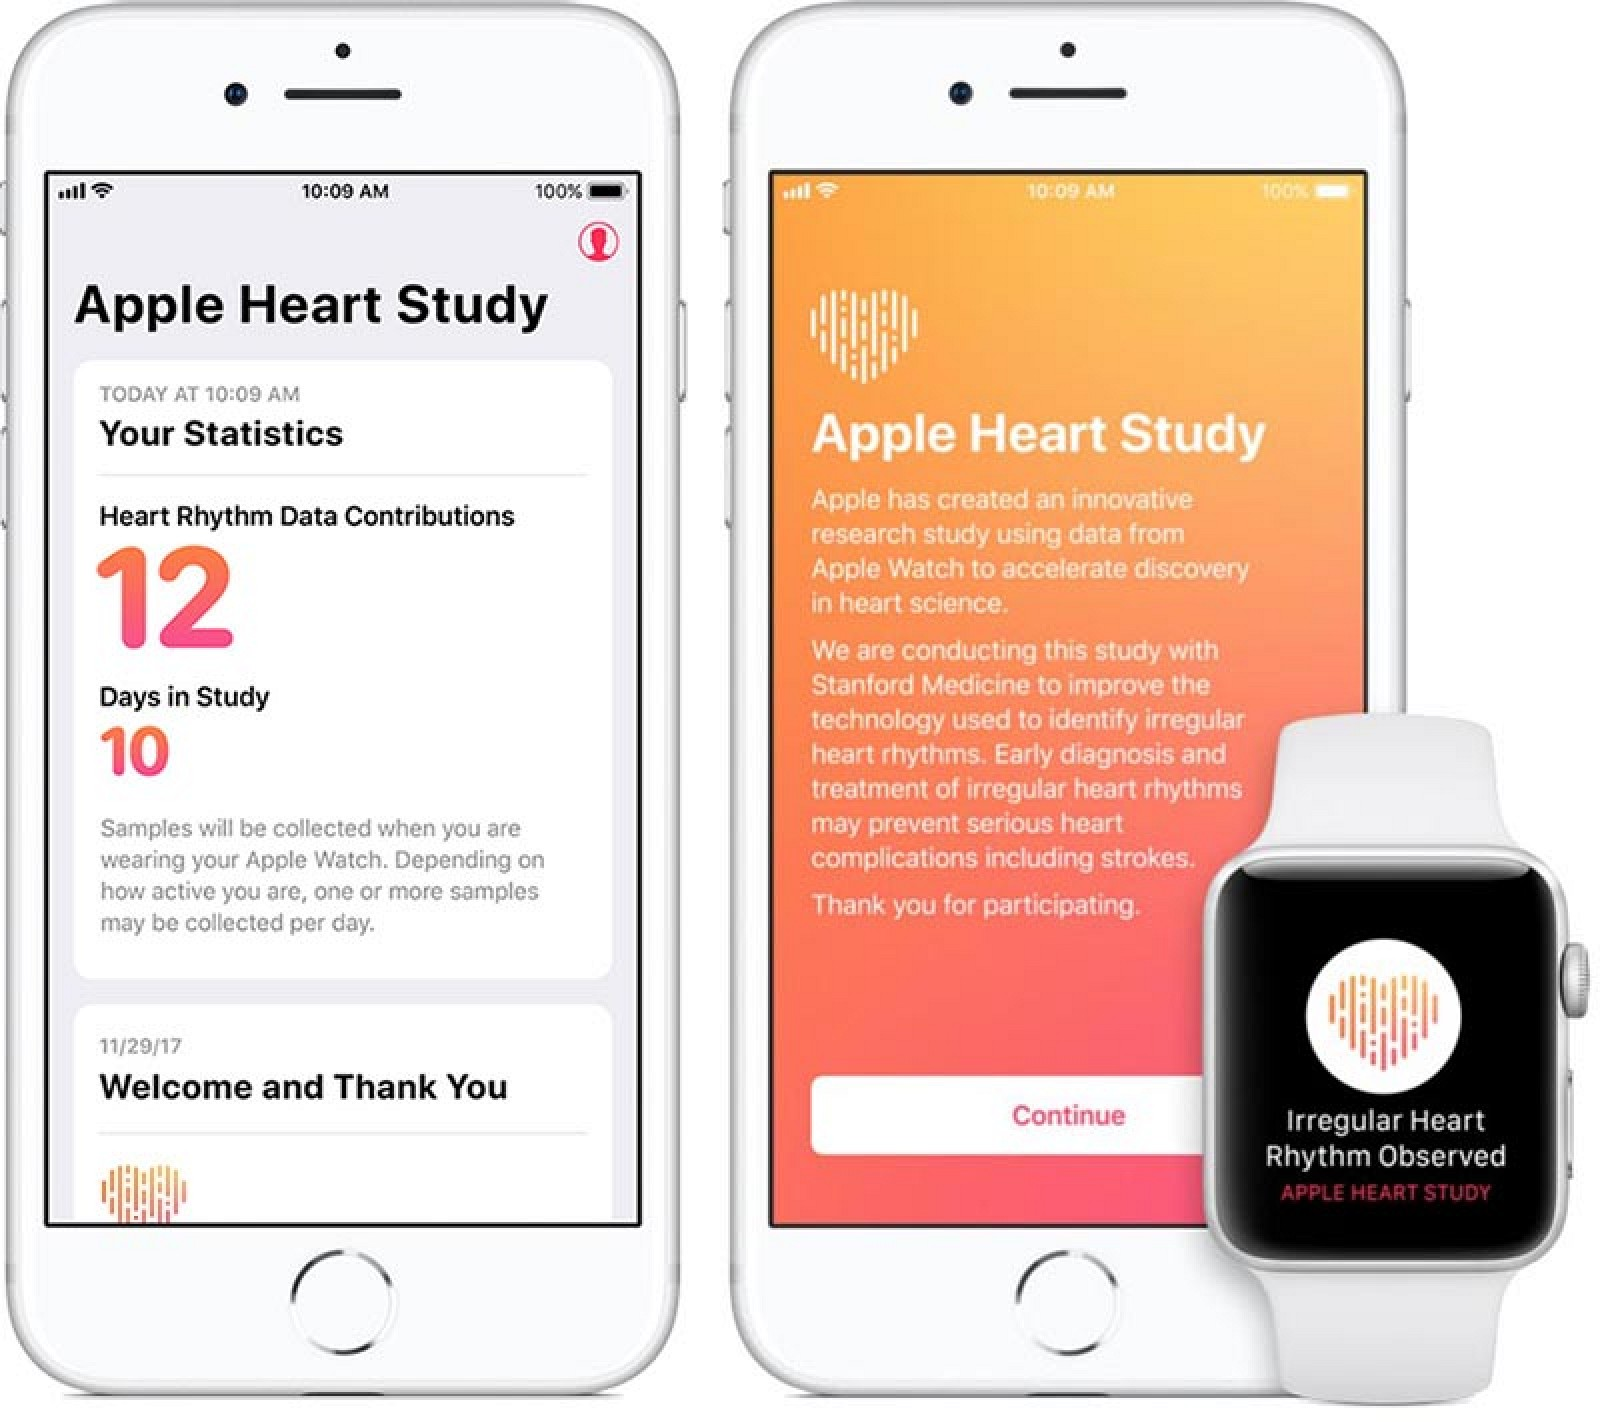 Stanford Medicine Publishes Results of Apple Heart Study